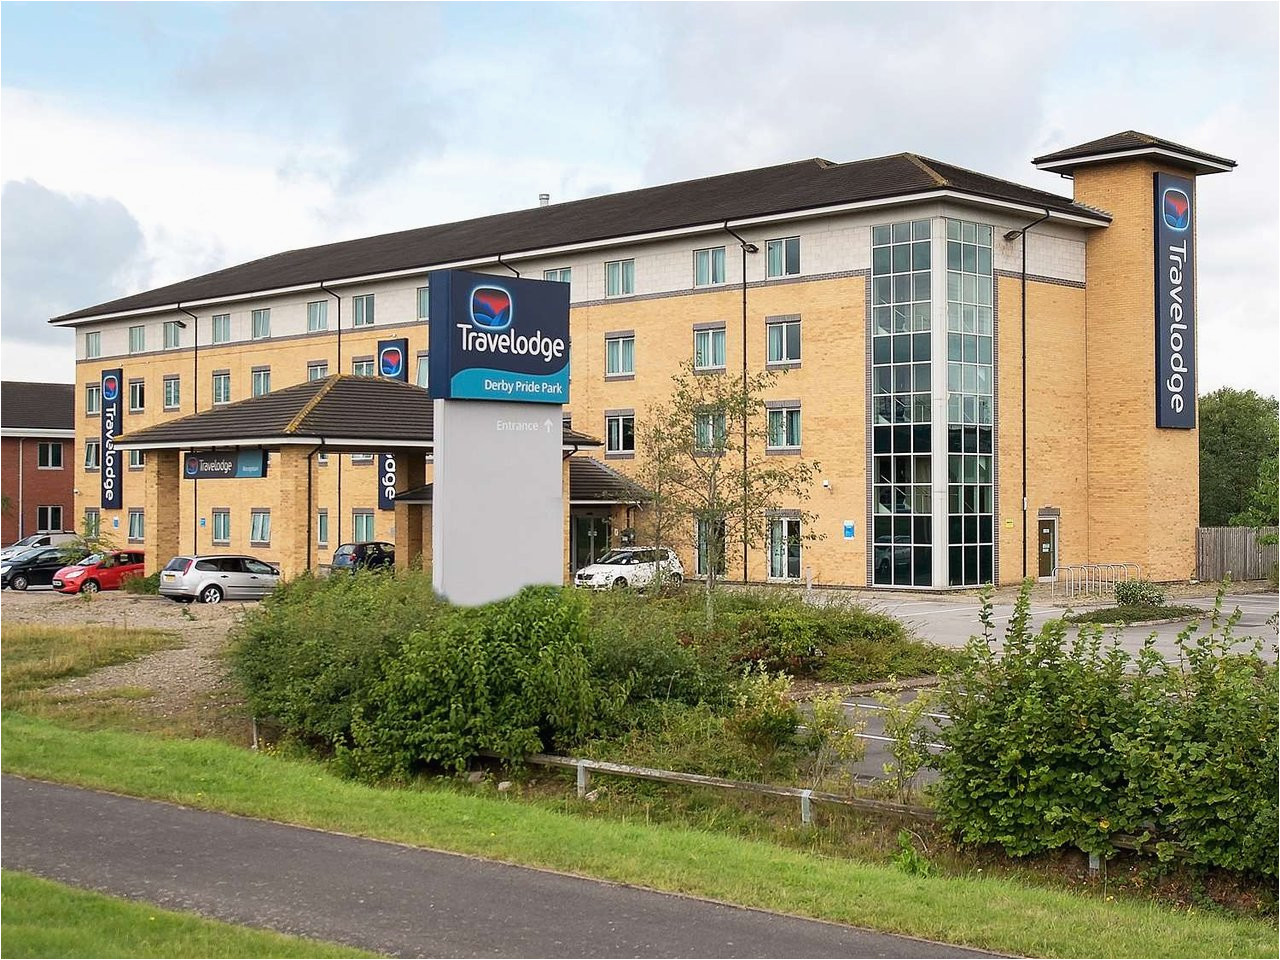 travelodge derby pride park updated 2019 prices hotel reviews